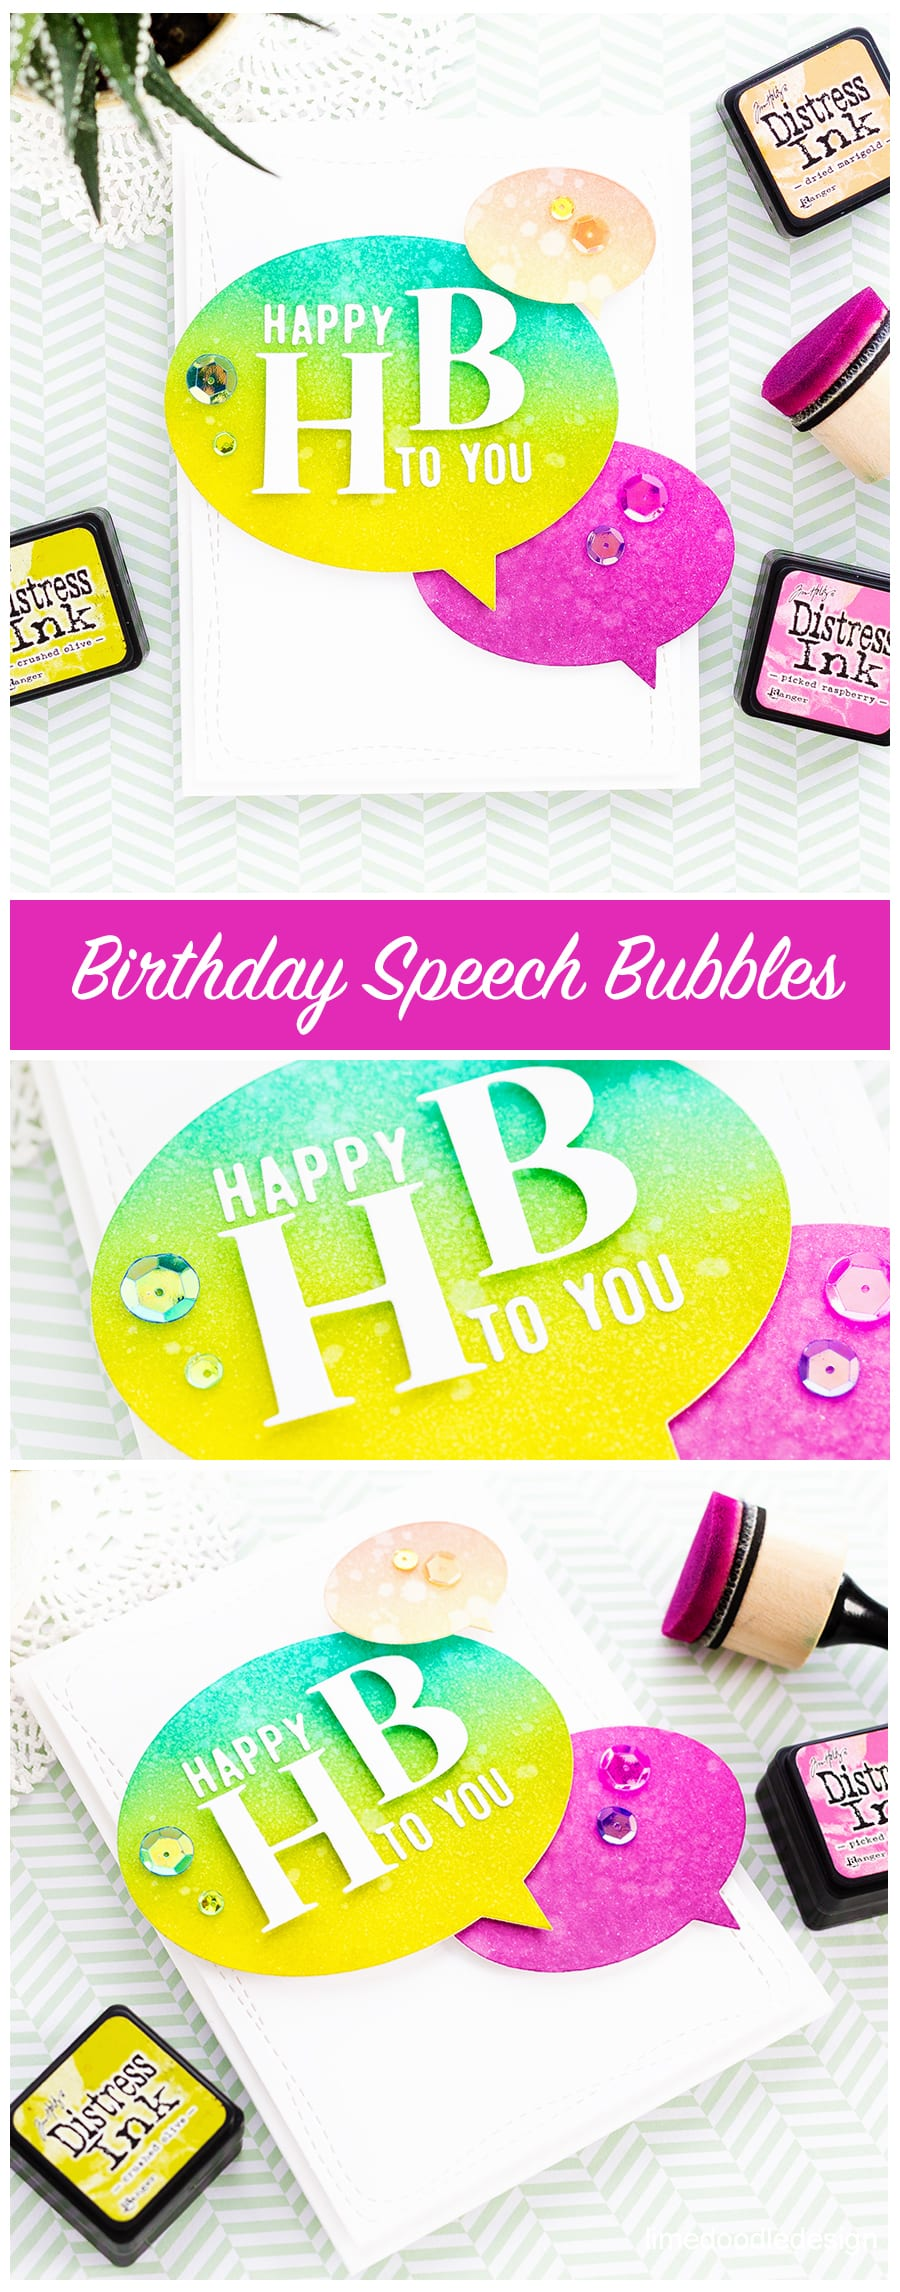 Fun, bright, modern handmade birthday card by Debby Hughes using products from the new Diecember release from Simon Says Stamp. Find out more here: https://limedoodledesign.com/2017/12/happy-hb-simon-says-stamp-diecember-release/